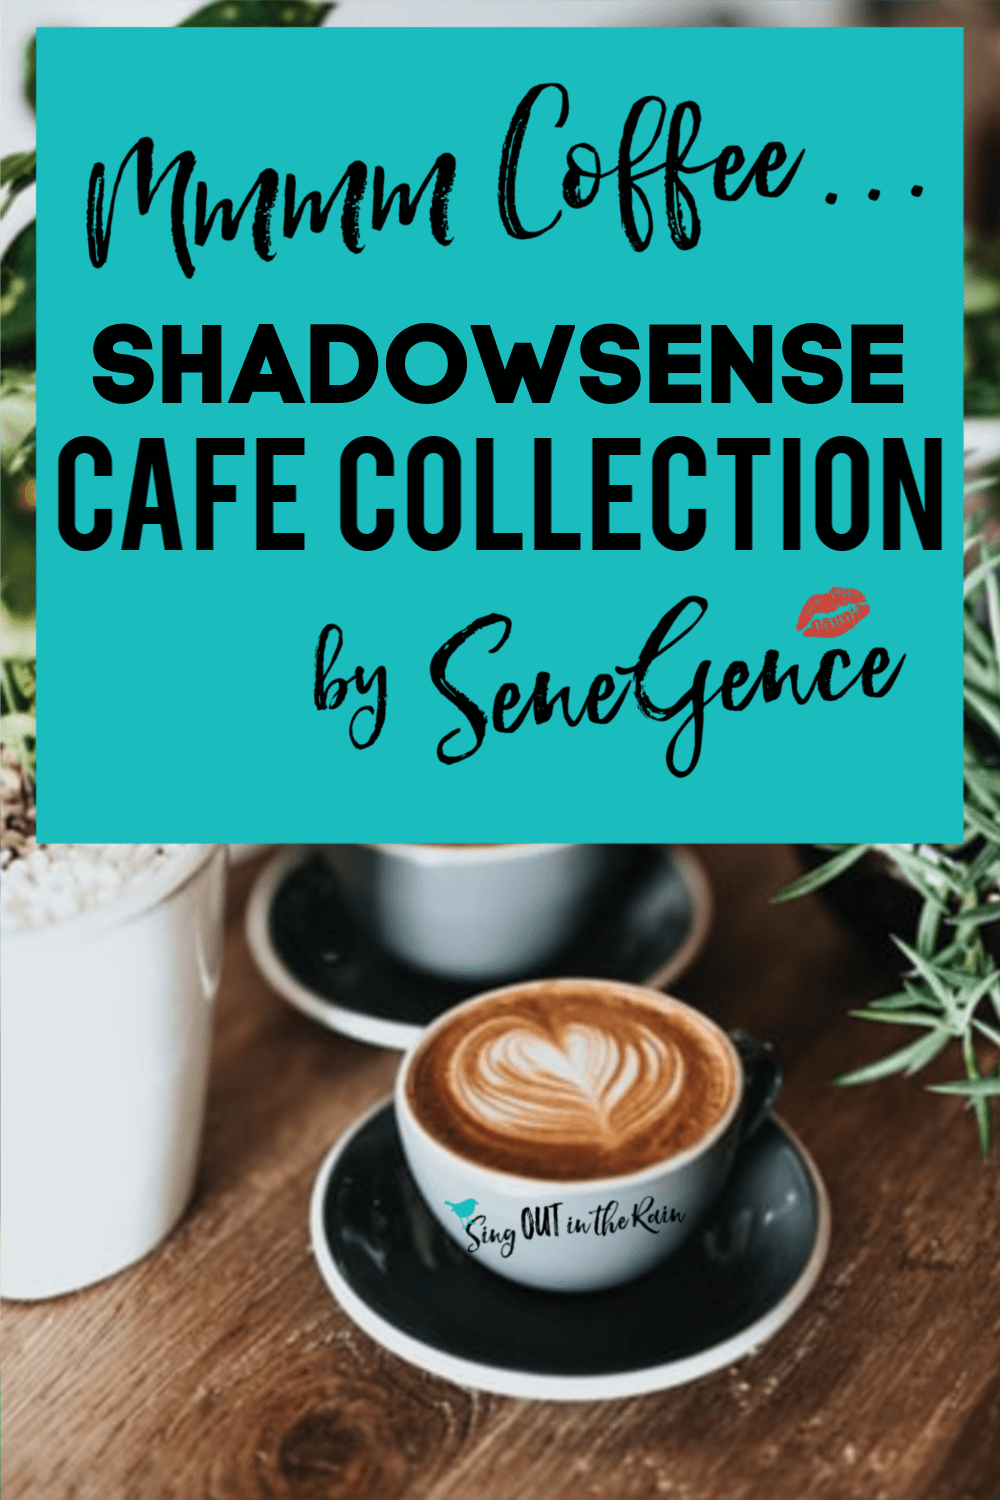 Limited Edition ShadowSense Cafe Collection by SeneGence includes 3 eyecolors : Cinnamon Shimmer, Americano and French Roast.  These brown hues are perfect for your fall makeup collection.  Don\'t let your Coffee get cold - click thru to view and purchase yours NOW!  #senegence #shadowsense #cafecollection #coffeelovers #fallmakeup